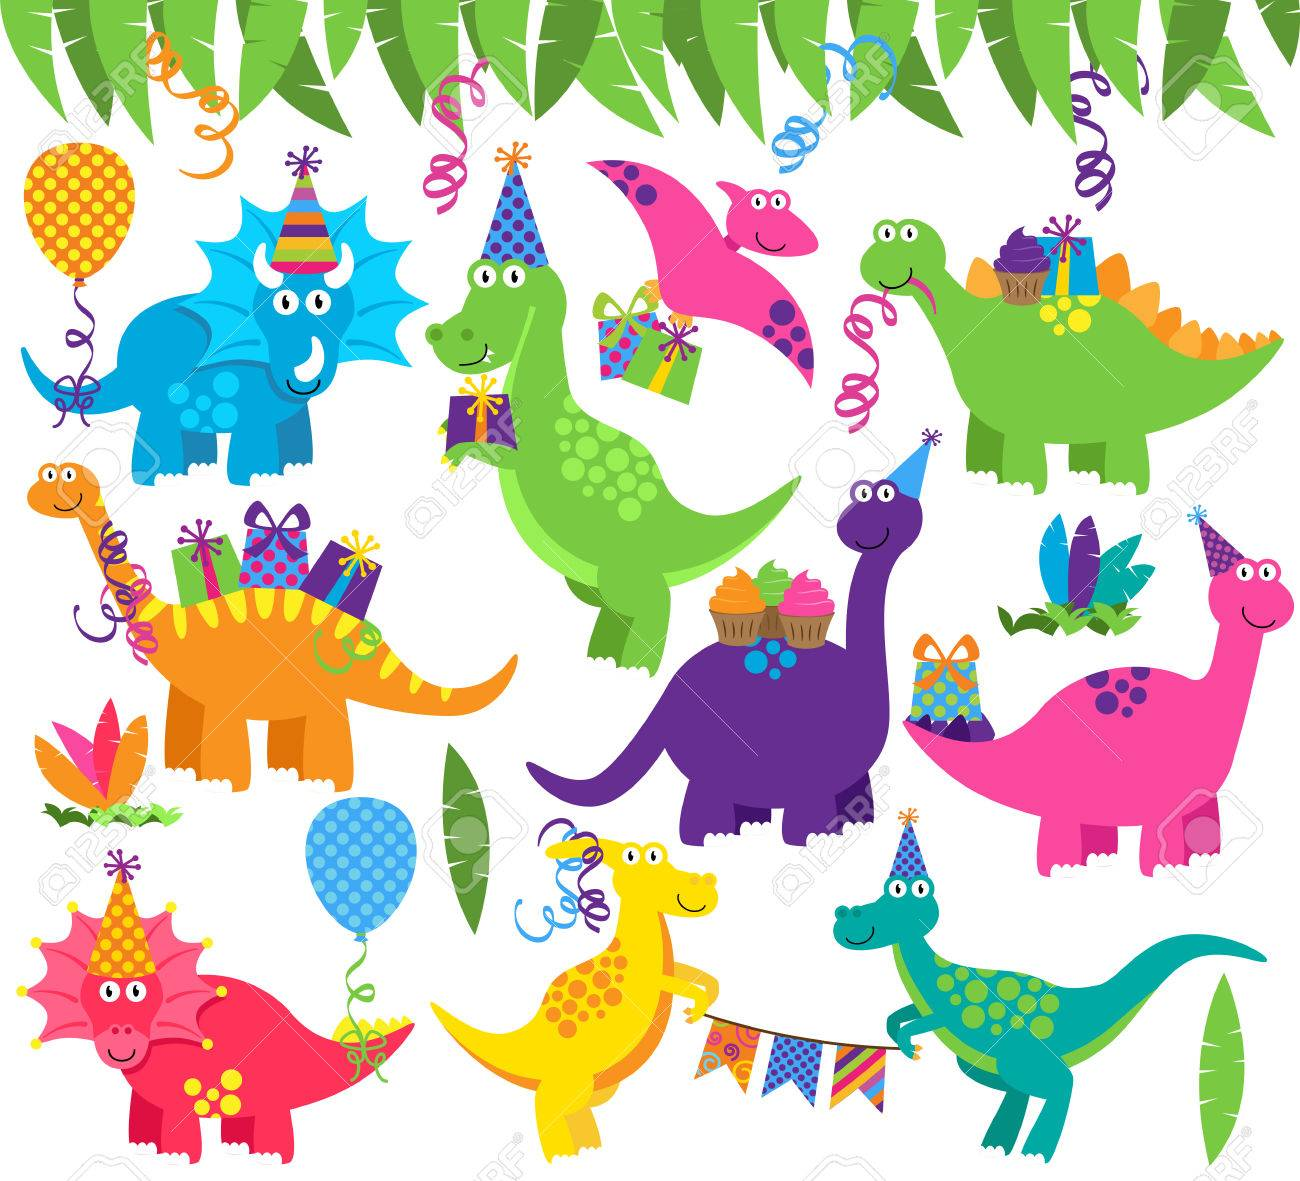 Collection of Birthday Party or Party Dinosaurs and Decorations - 59123492